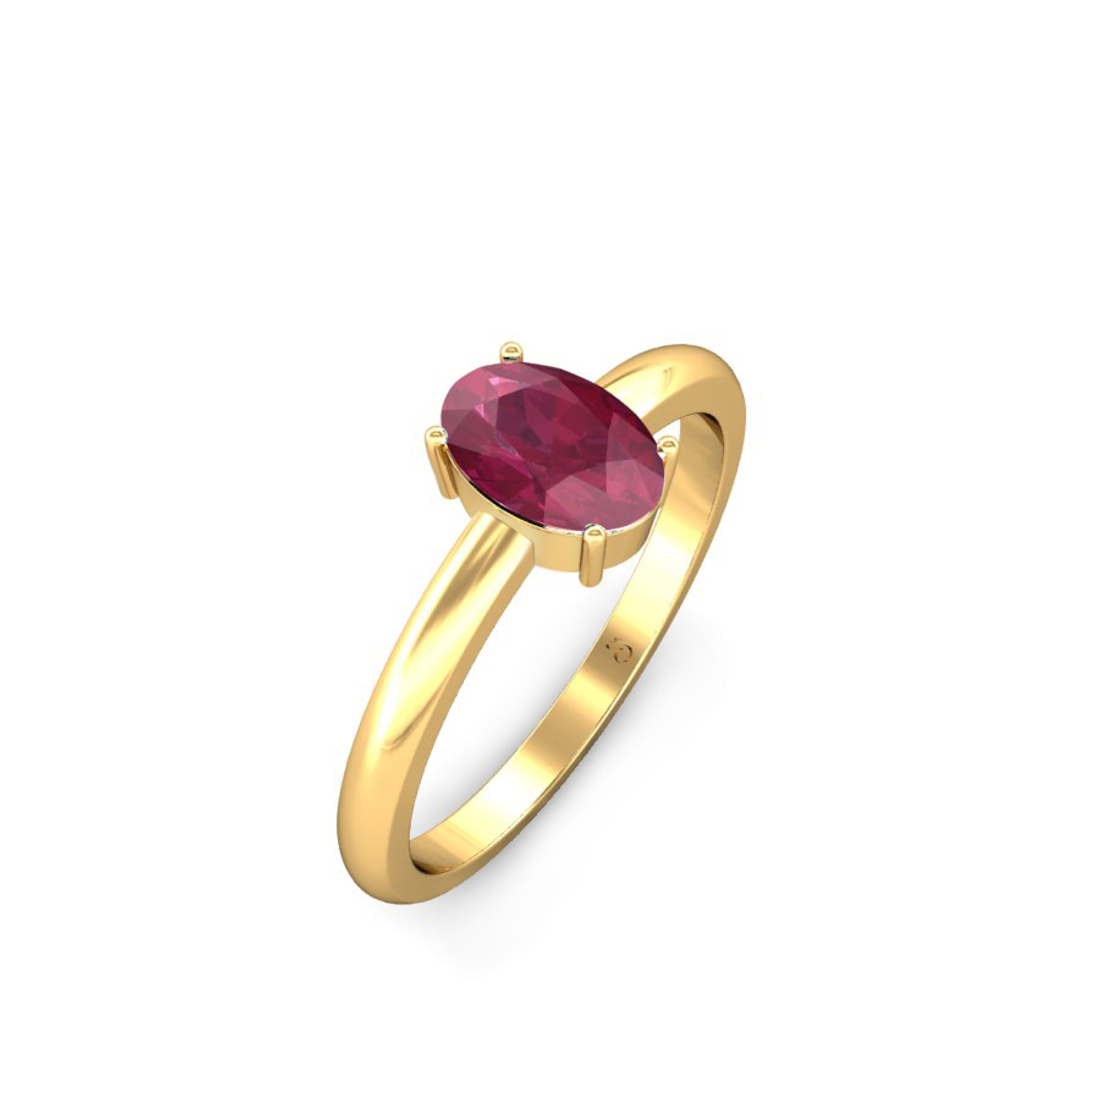 Jewel samarth 18k(750) BIS Hallmark Yellow Gold  Ayesha Red Spinel  Ring (CGL Certified)